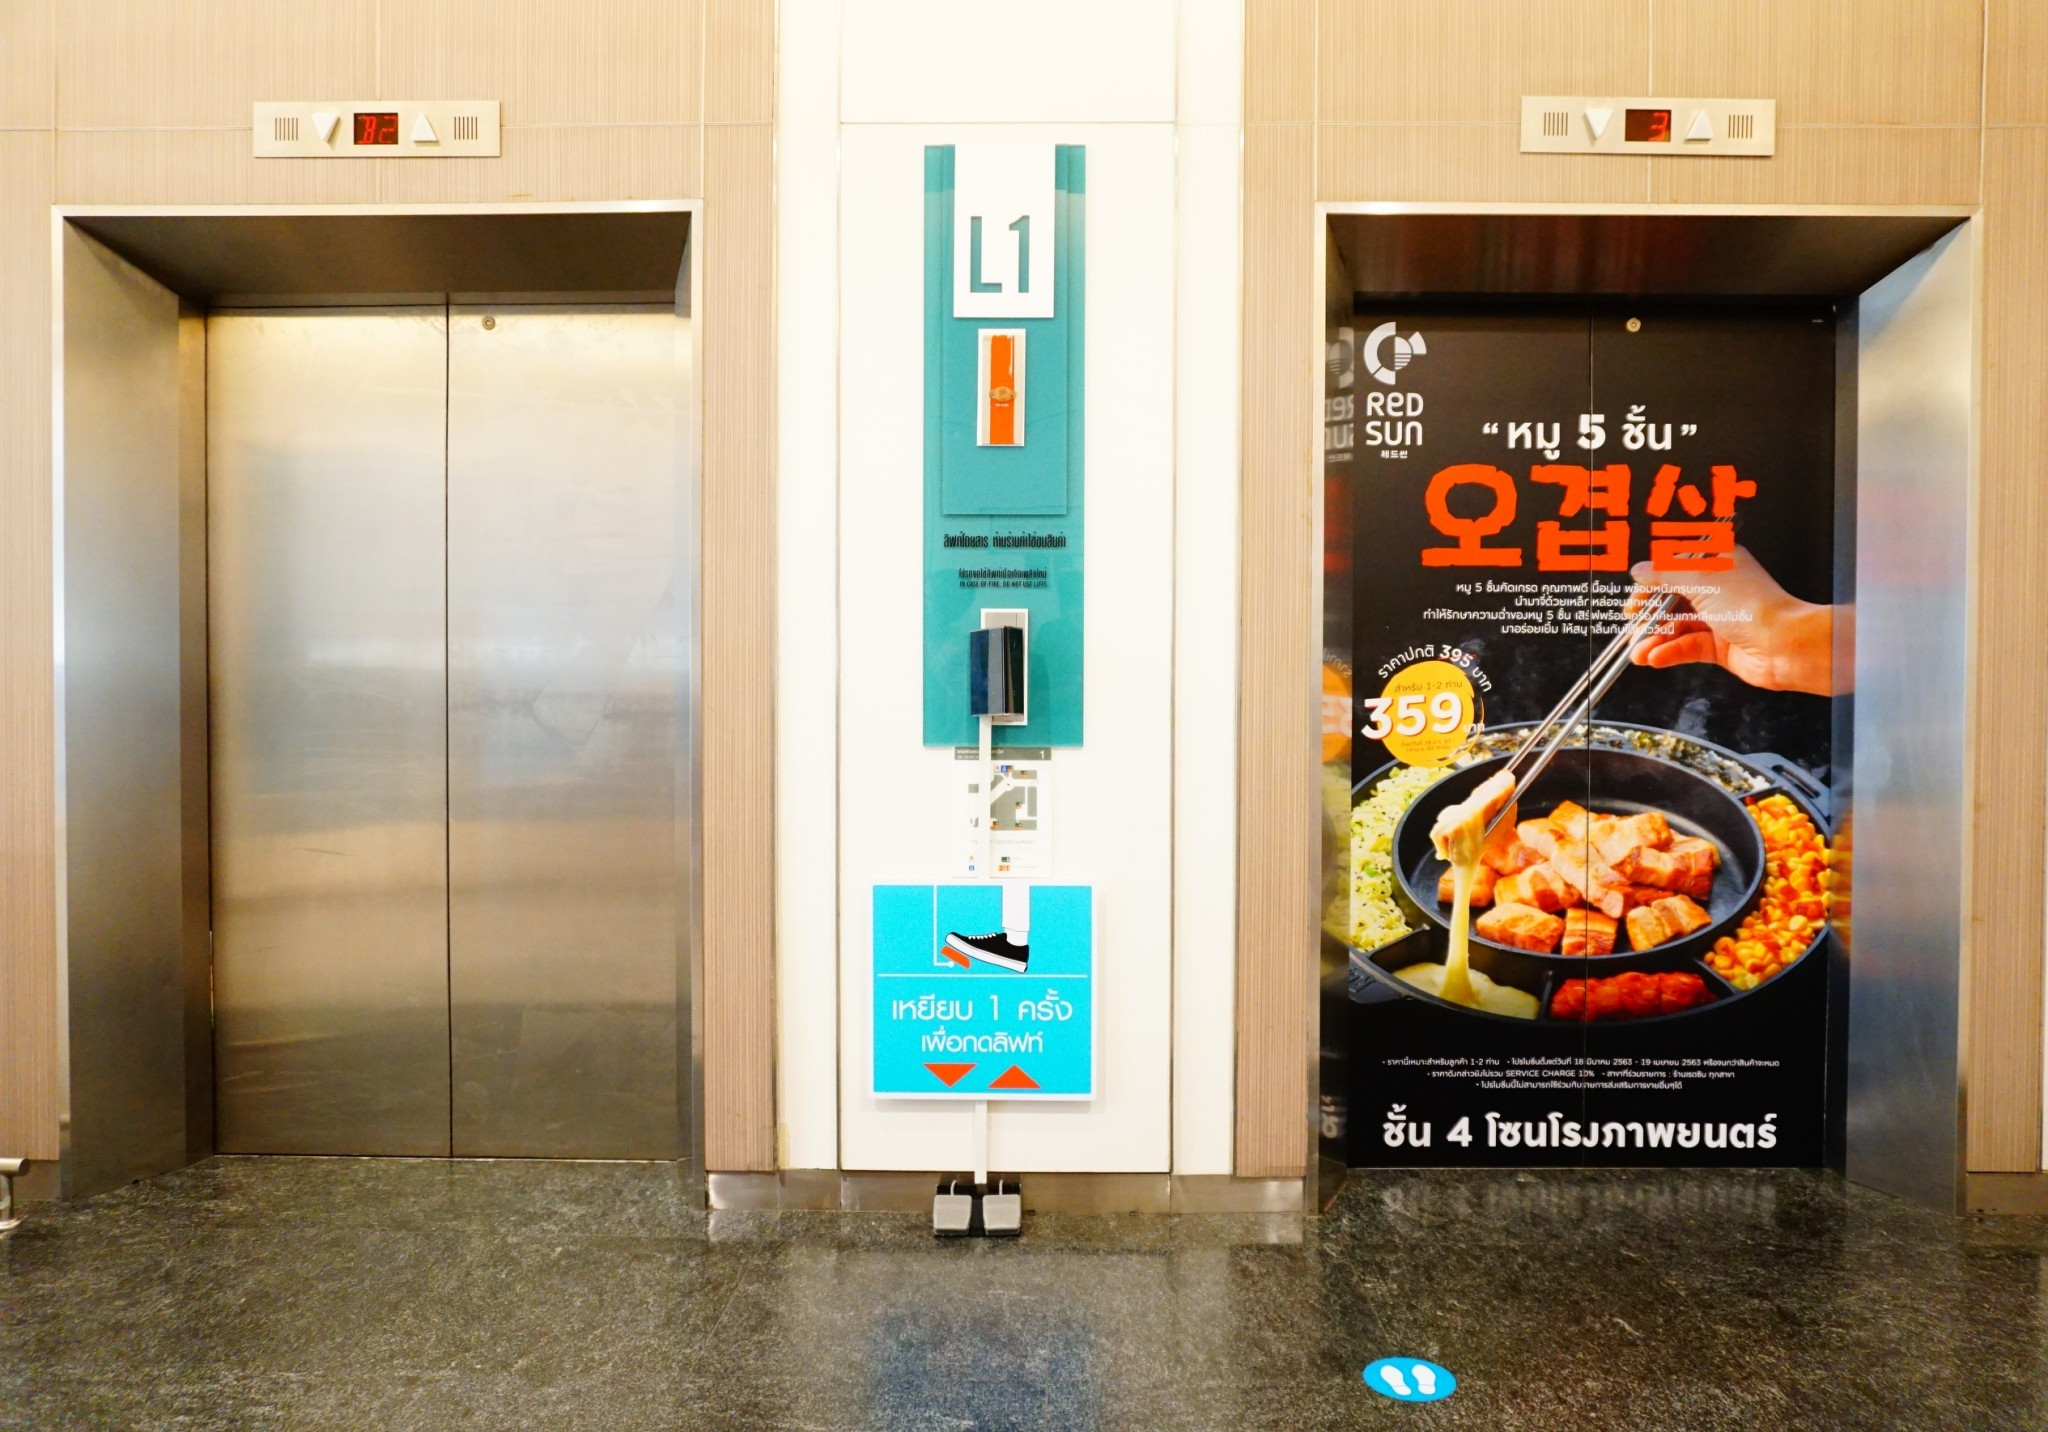 Lift Buttons are Replaced with Foot Pedals in the Mall to Reduce Spread of Coronavirus